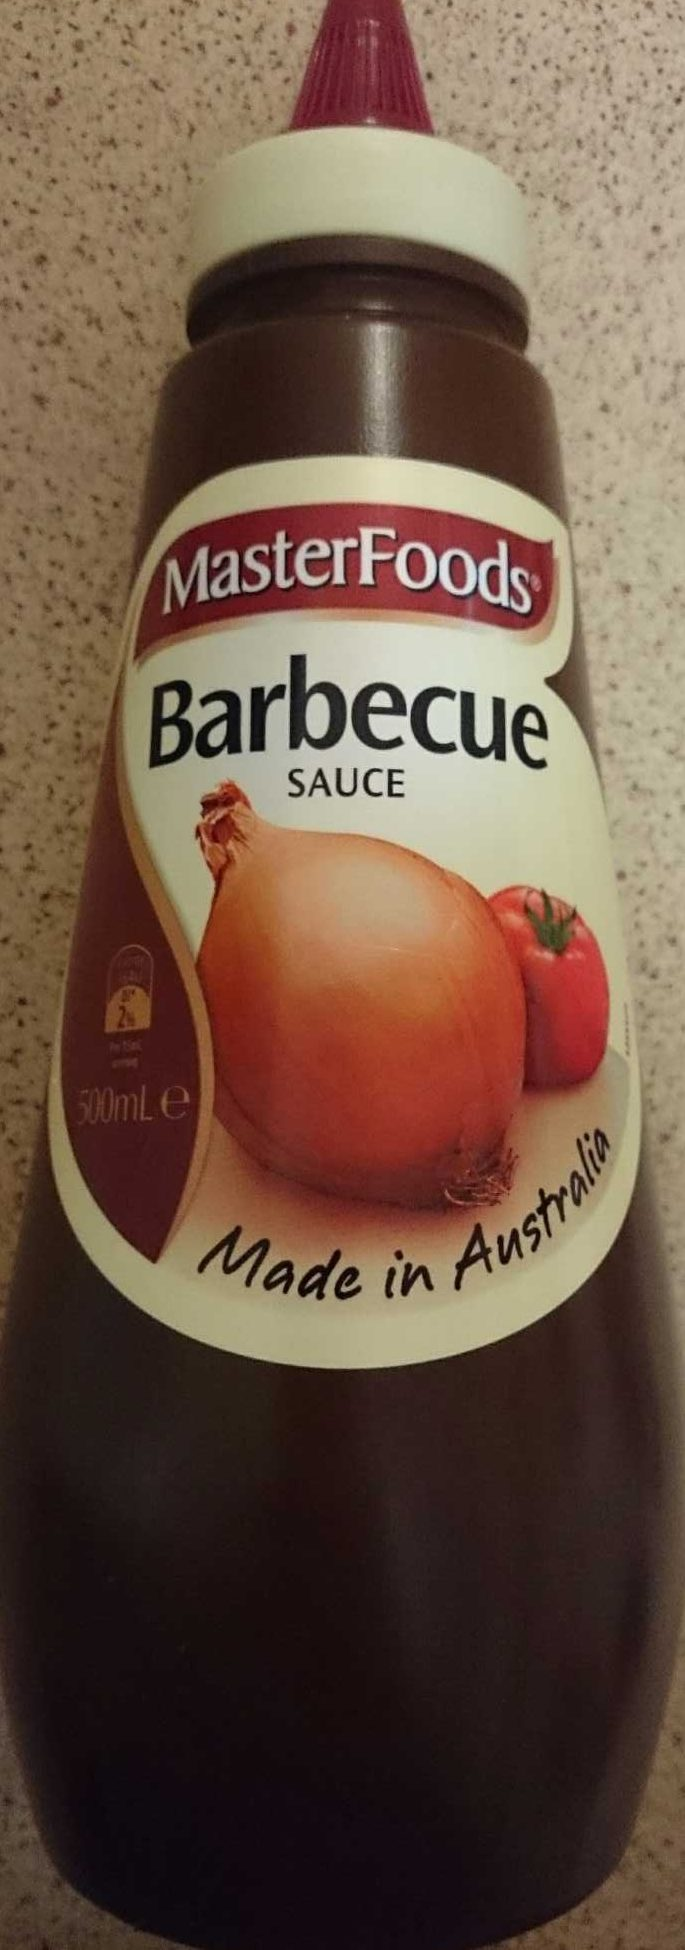 MasterFoods Barbecue Sauce - Product - en